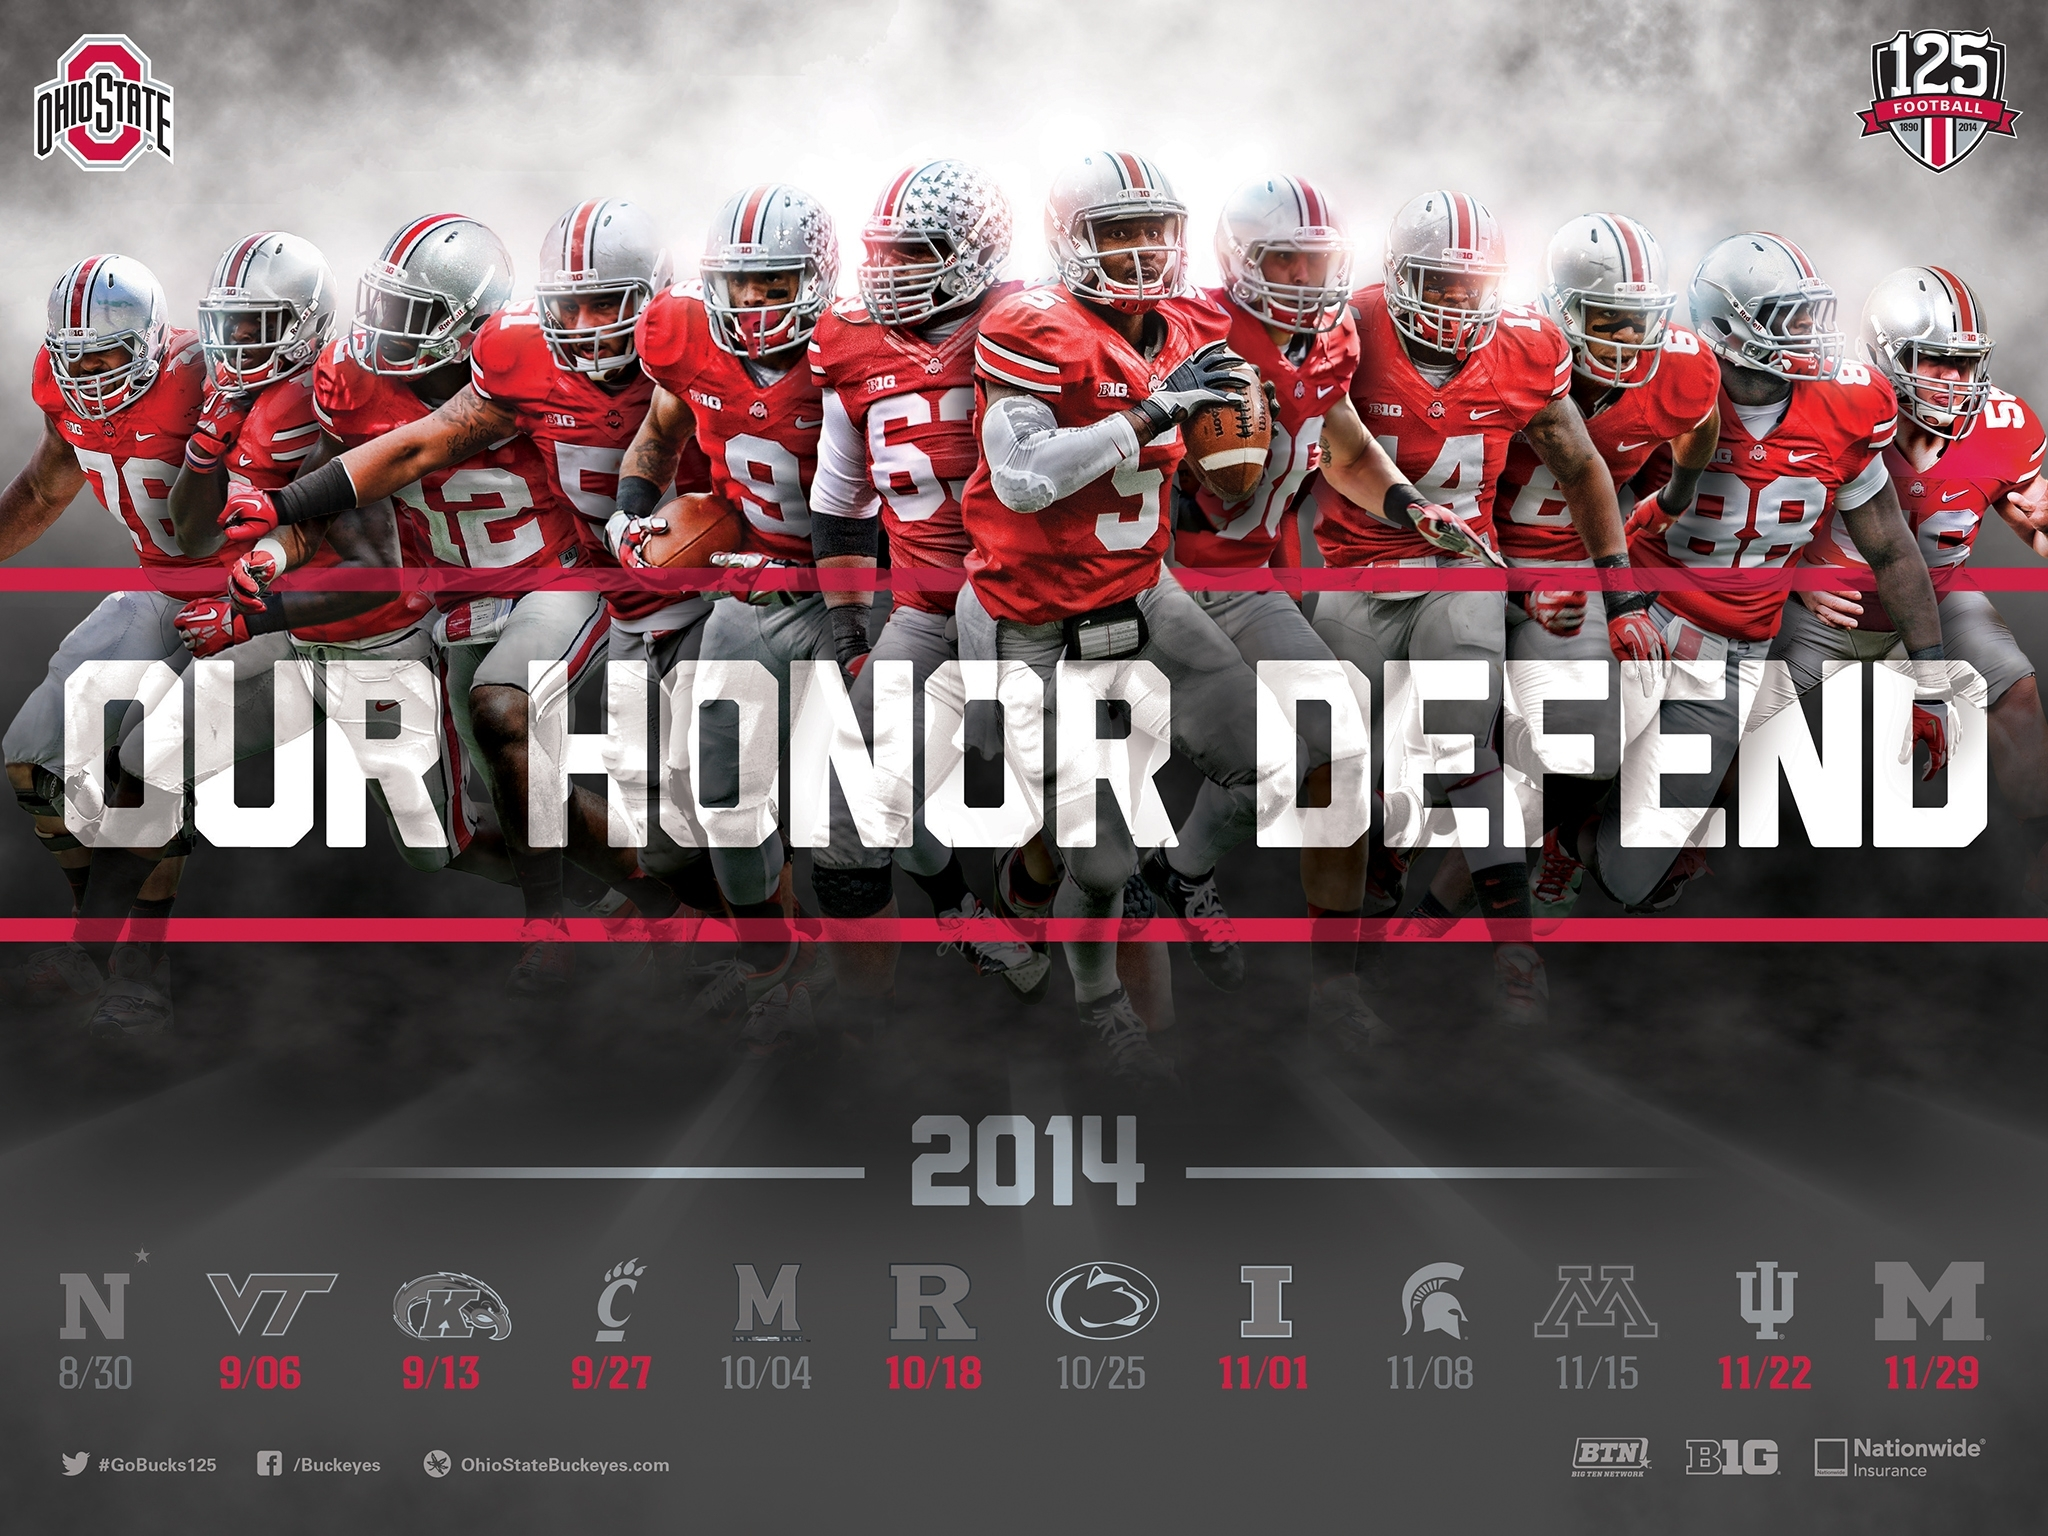 download the ohio state football 2014 schedule poster for printing